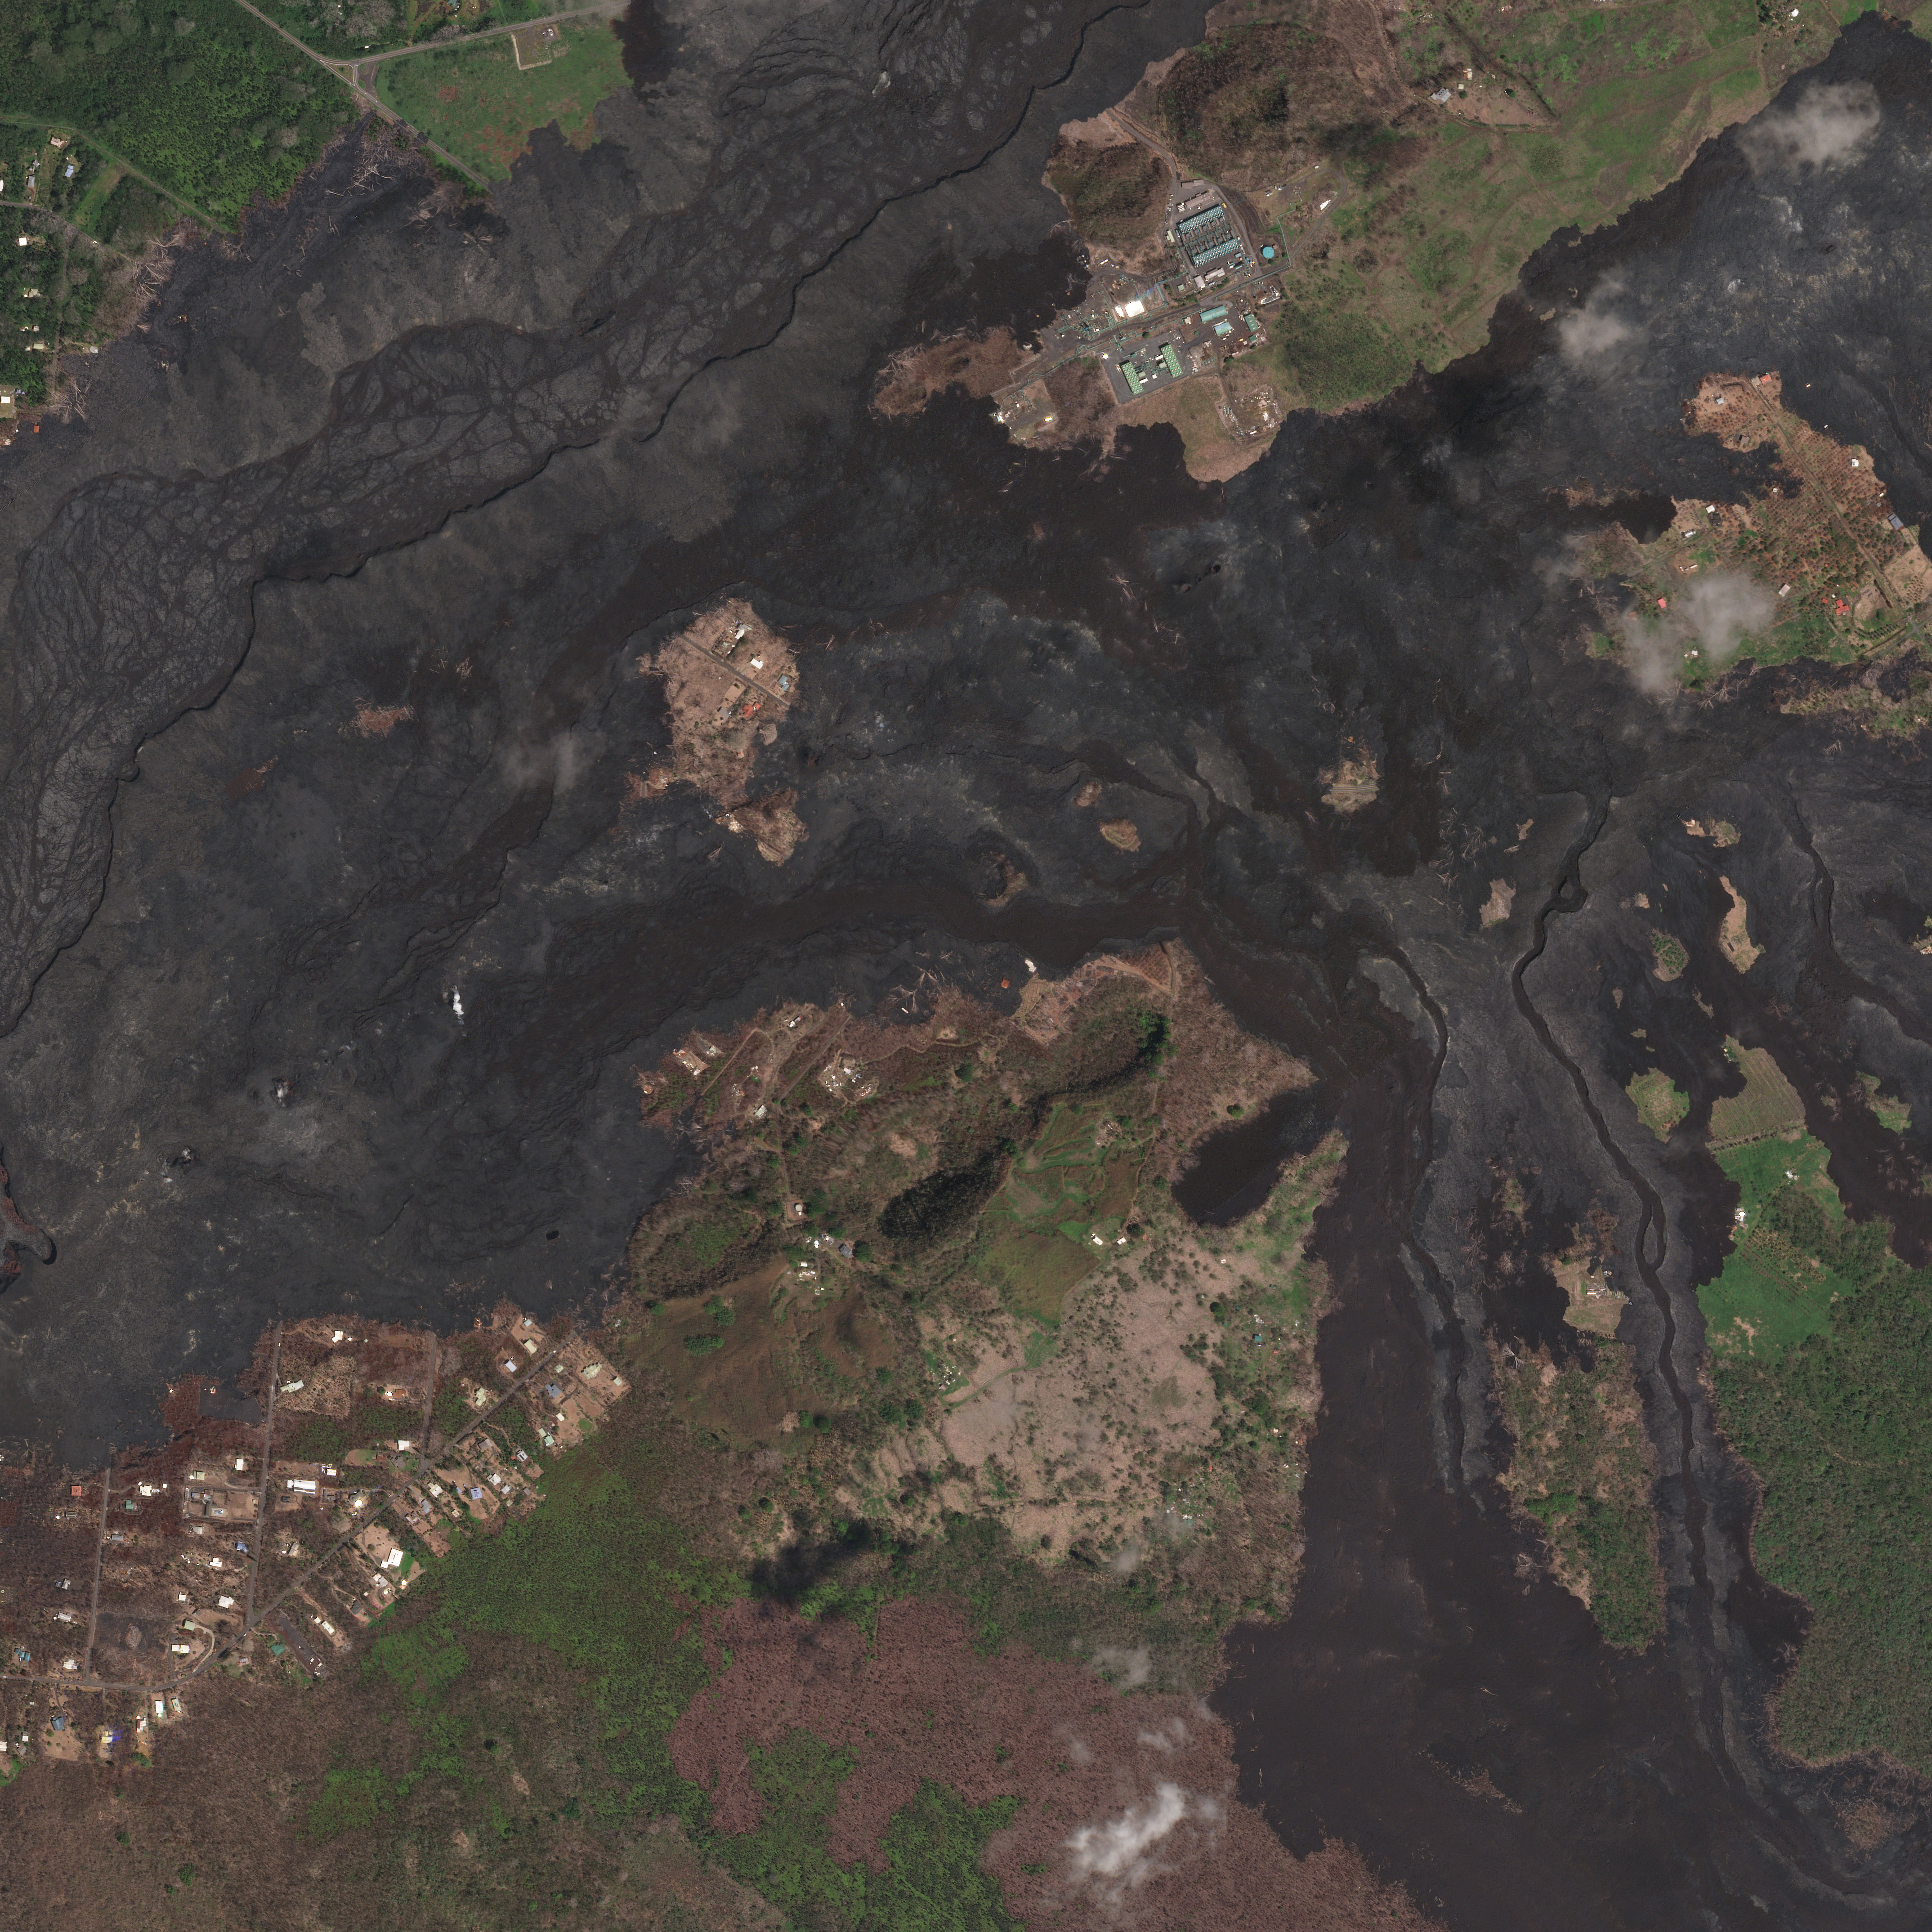 Lava flows destroy vegetation in Pahoa, Hawaii in September of 2018. (c) 2018, Planet Labs Inc. All Rights Reserved.